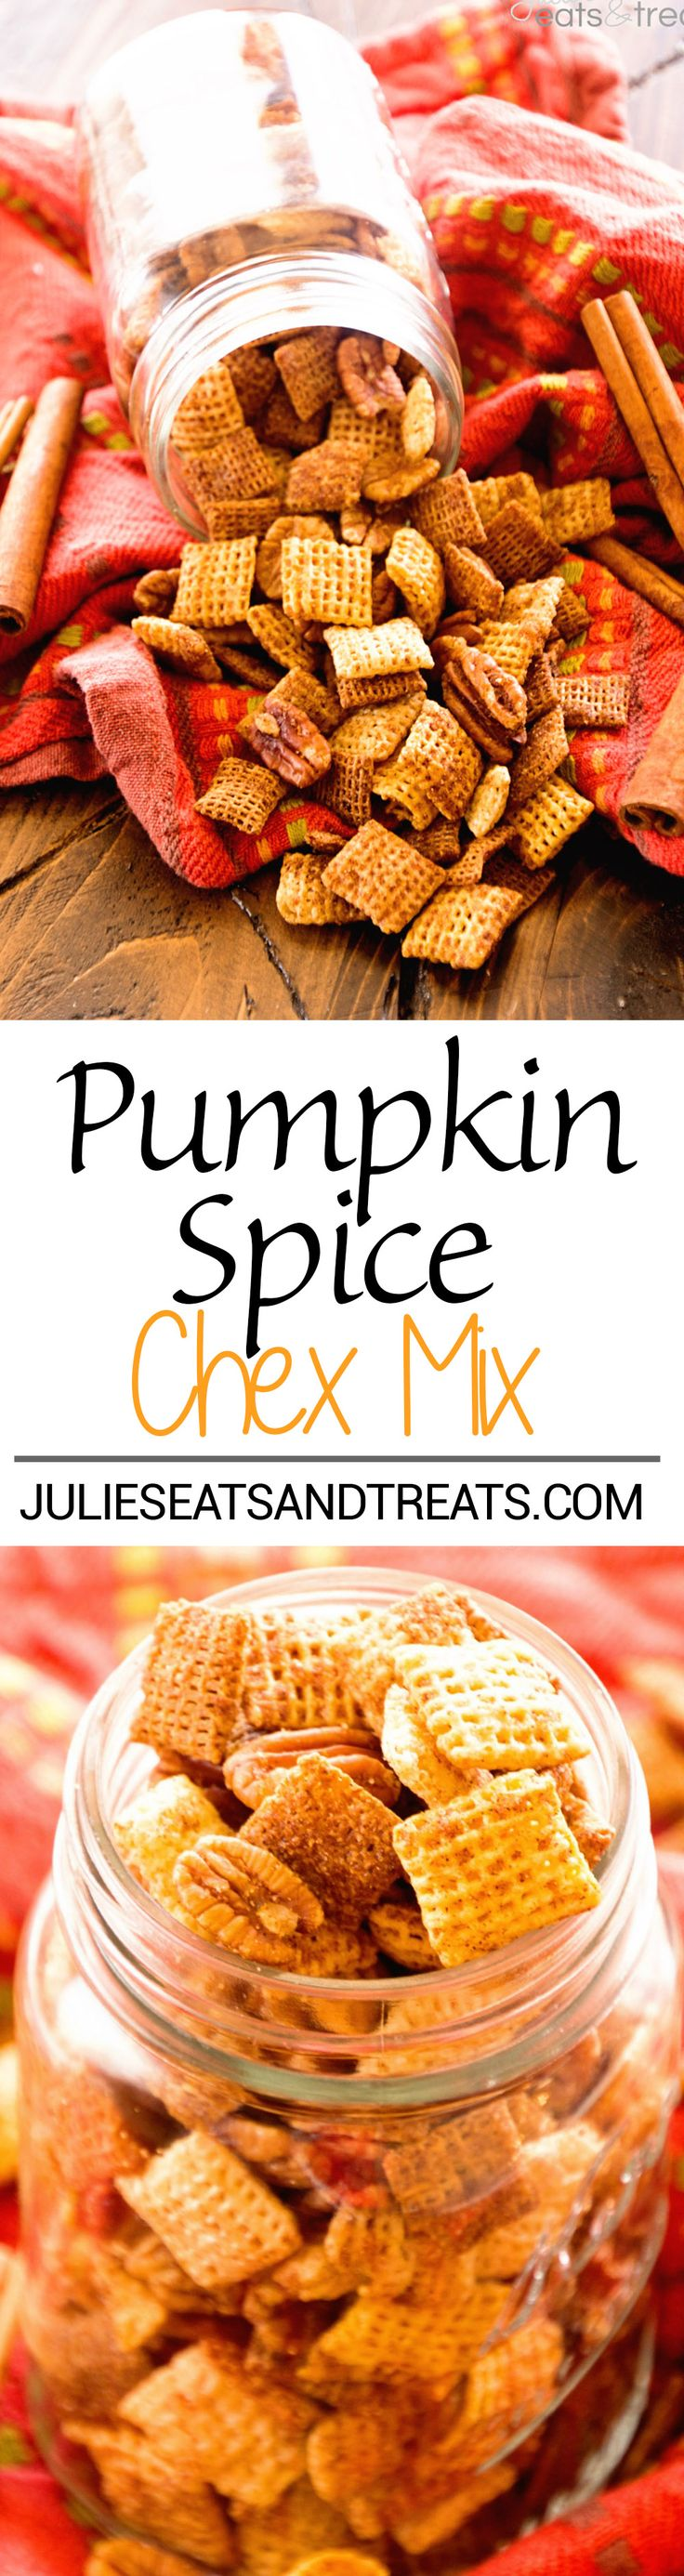 Pumpkin Chex Mix™ Recipe ~ Butter, Brown Sugar and Spice Make a Quick, Easy Sweet and Crunchy Chex Mix! Plus Make it in Your Microwave! @ChexCereal #spon #ChexMagic